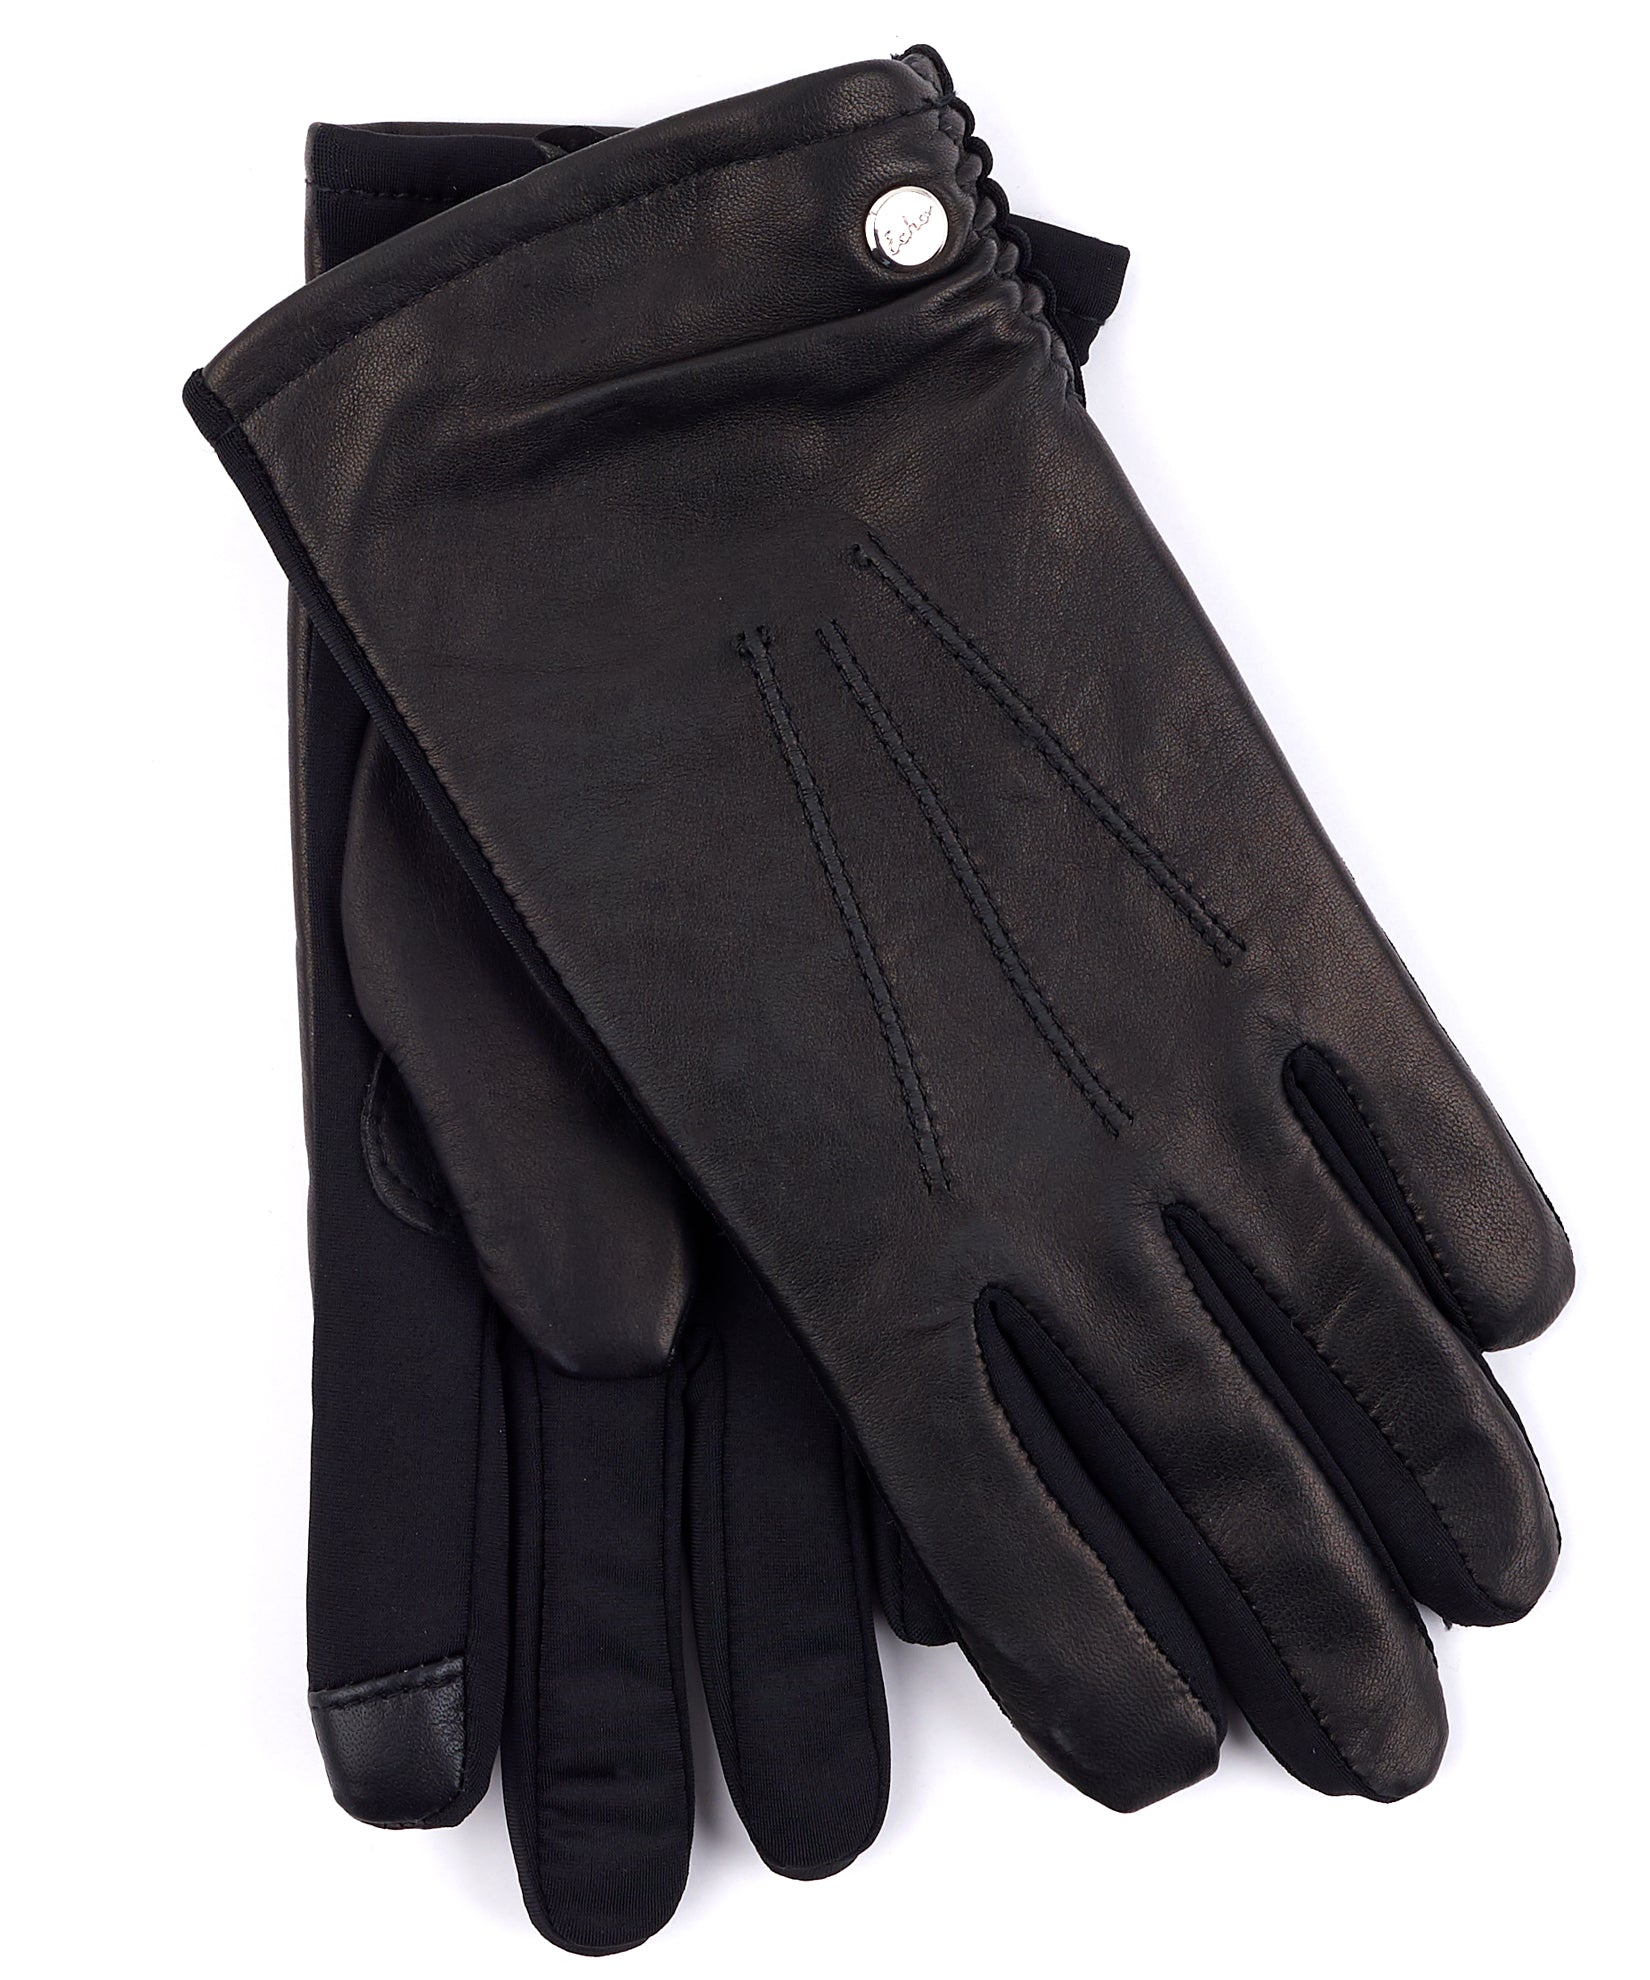 Echo Black - Classic Leather Superfit Glove